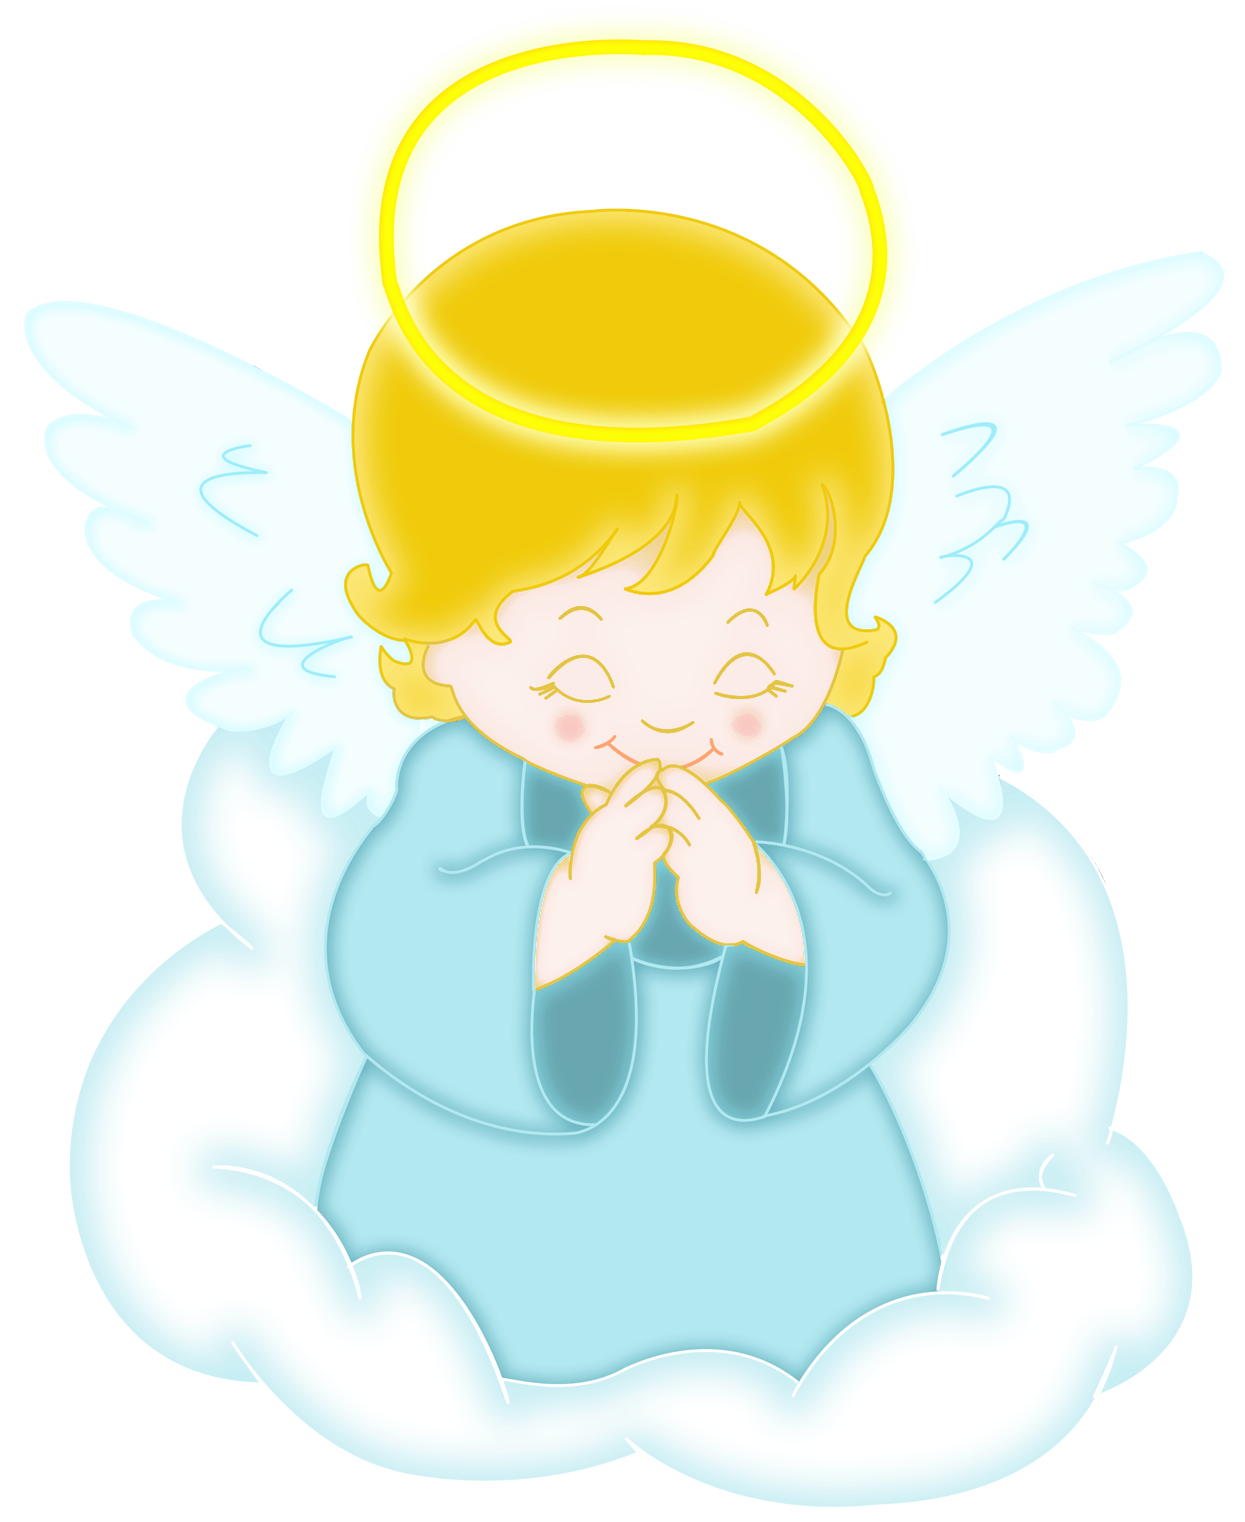 angel clipart transparent - HD 1200×1467